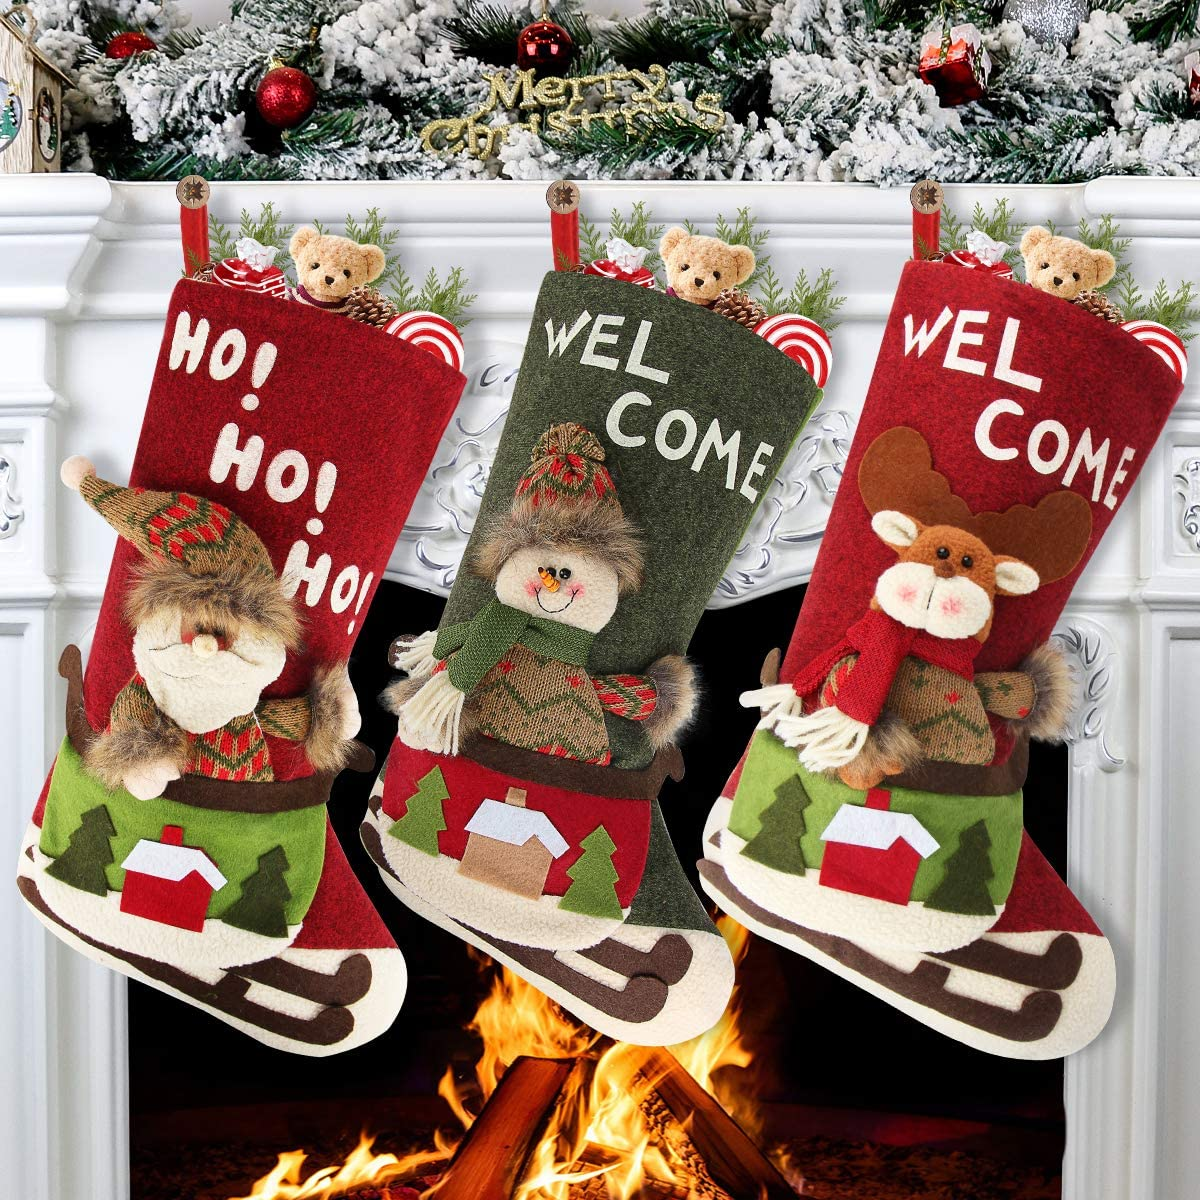 Aiduy 3 Pack Christmas Stockings Ranking TOP9 Xmas Complete Free Shipping Fireplace Stoc Hanging Set